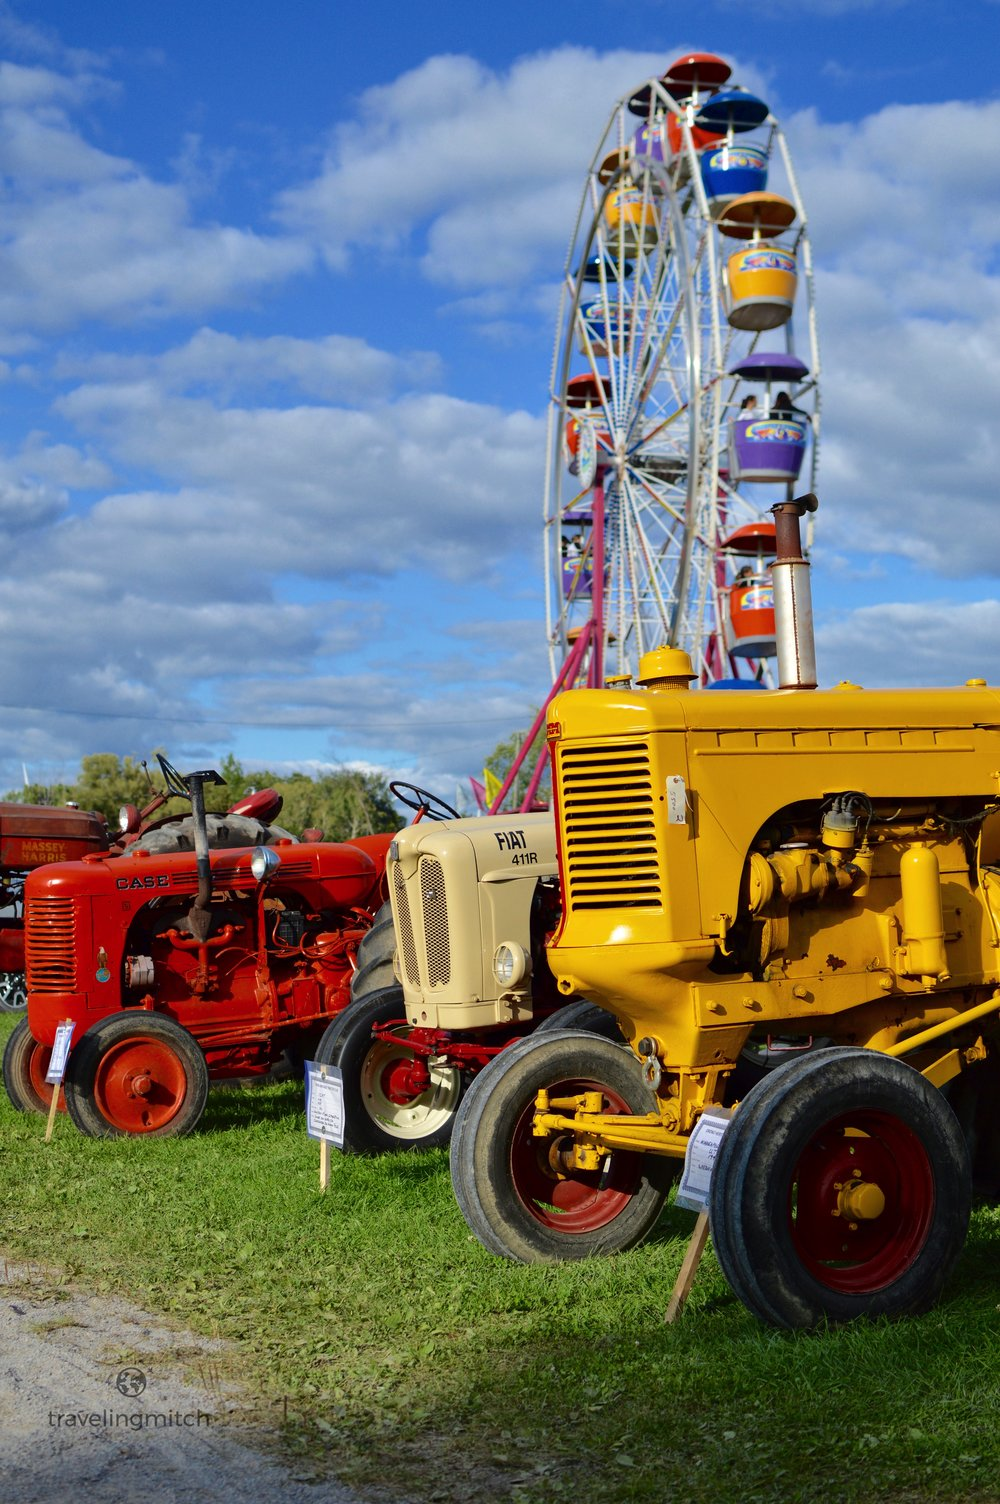 The 165 year old Orono Fair in Orono, Ontario